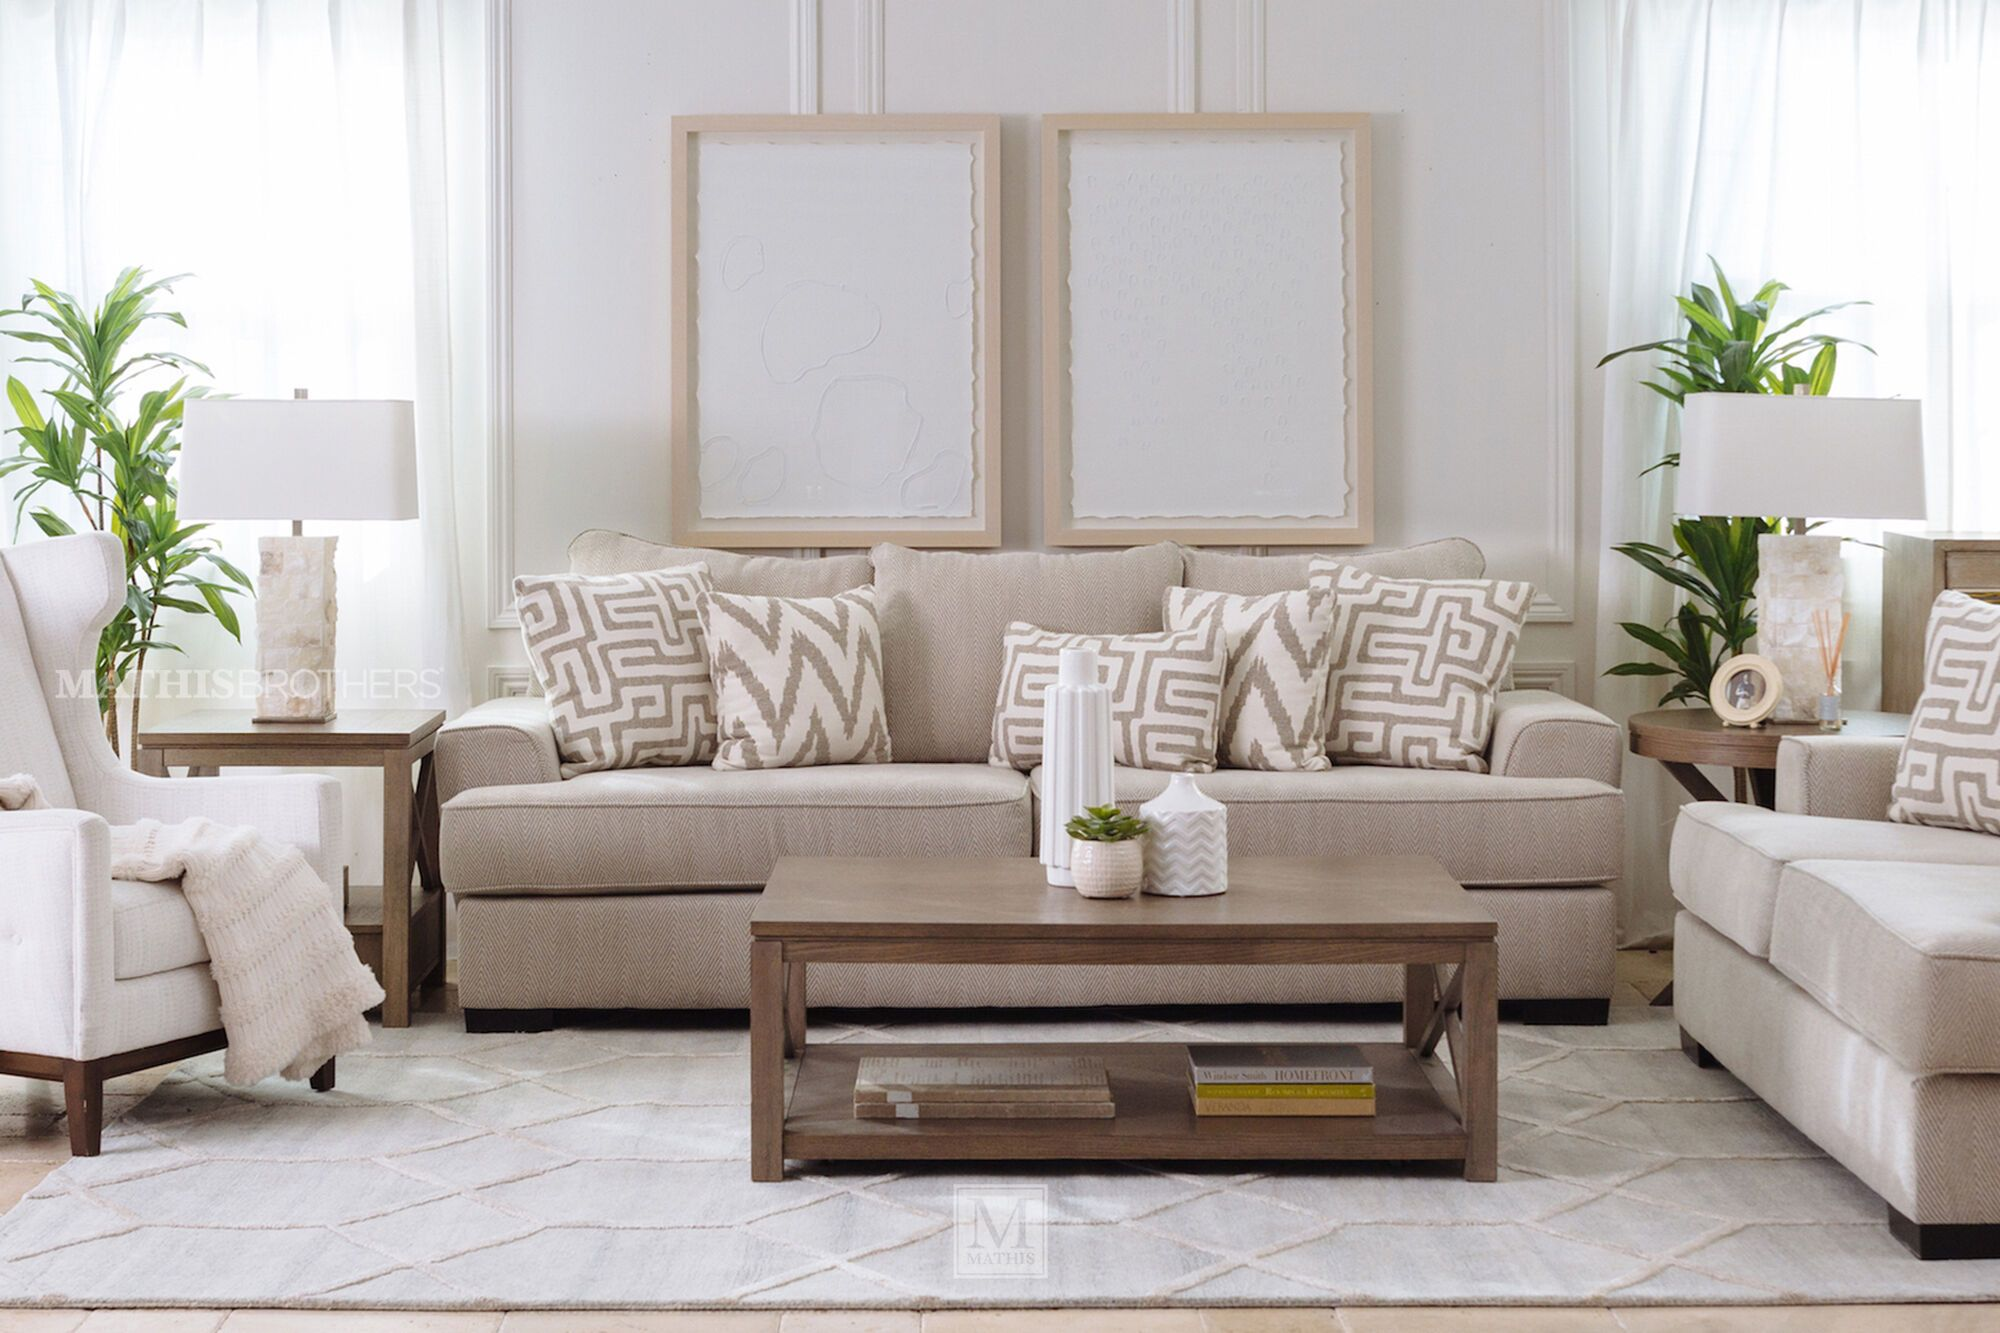 Contemporary Textured 101 Sofa In Greige Mathis Brot